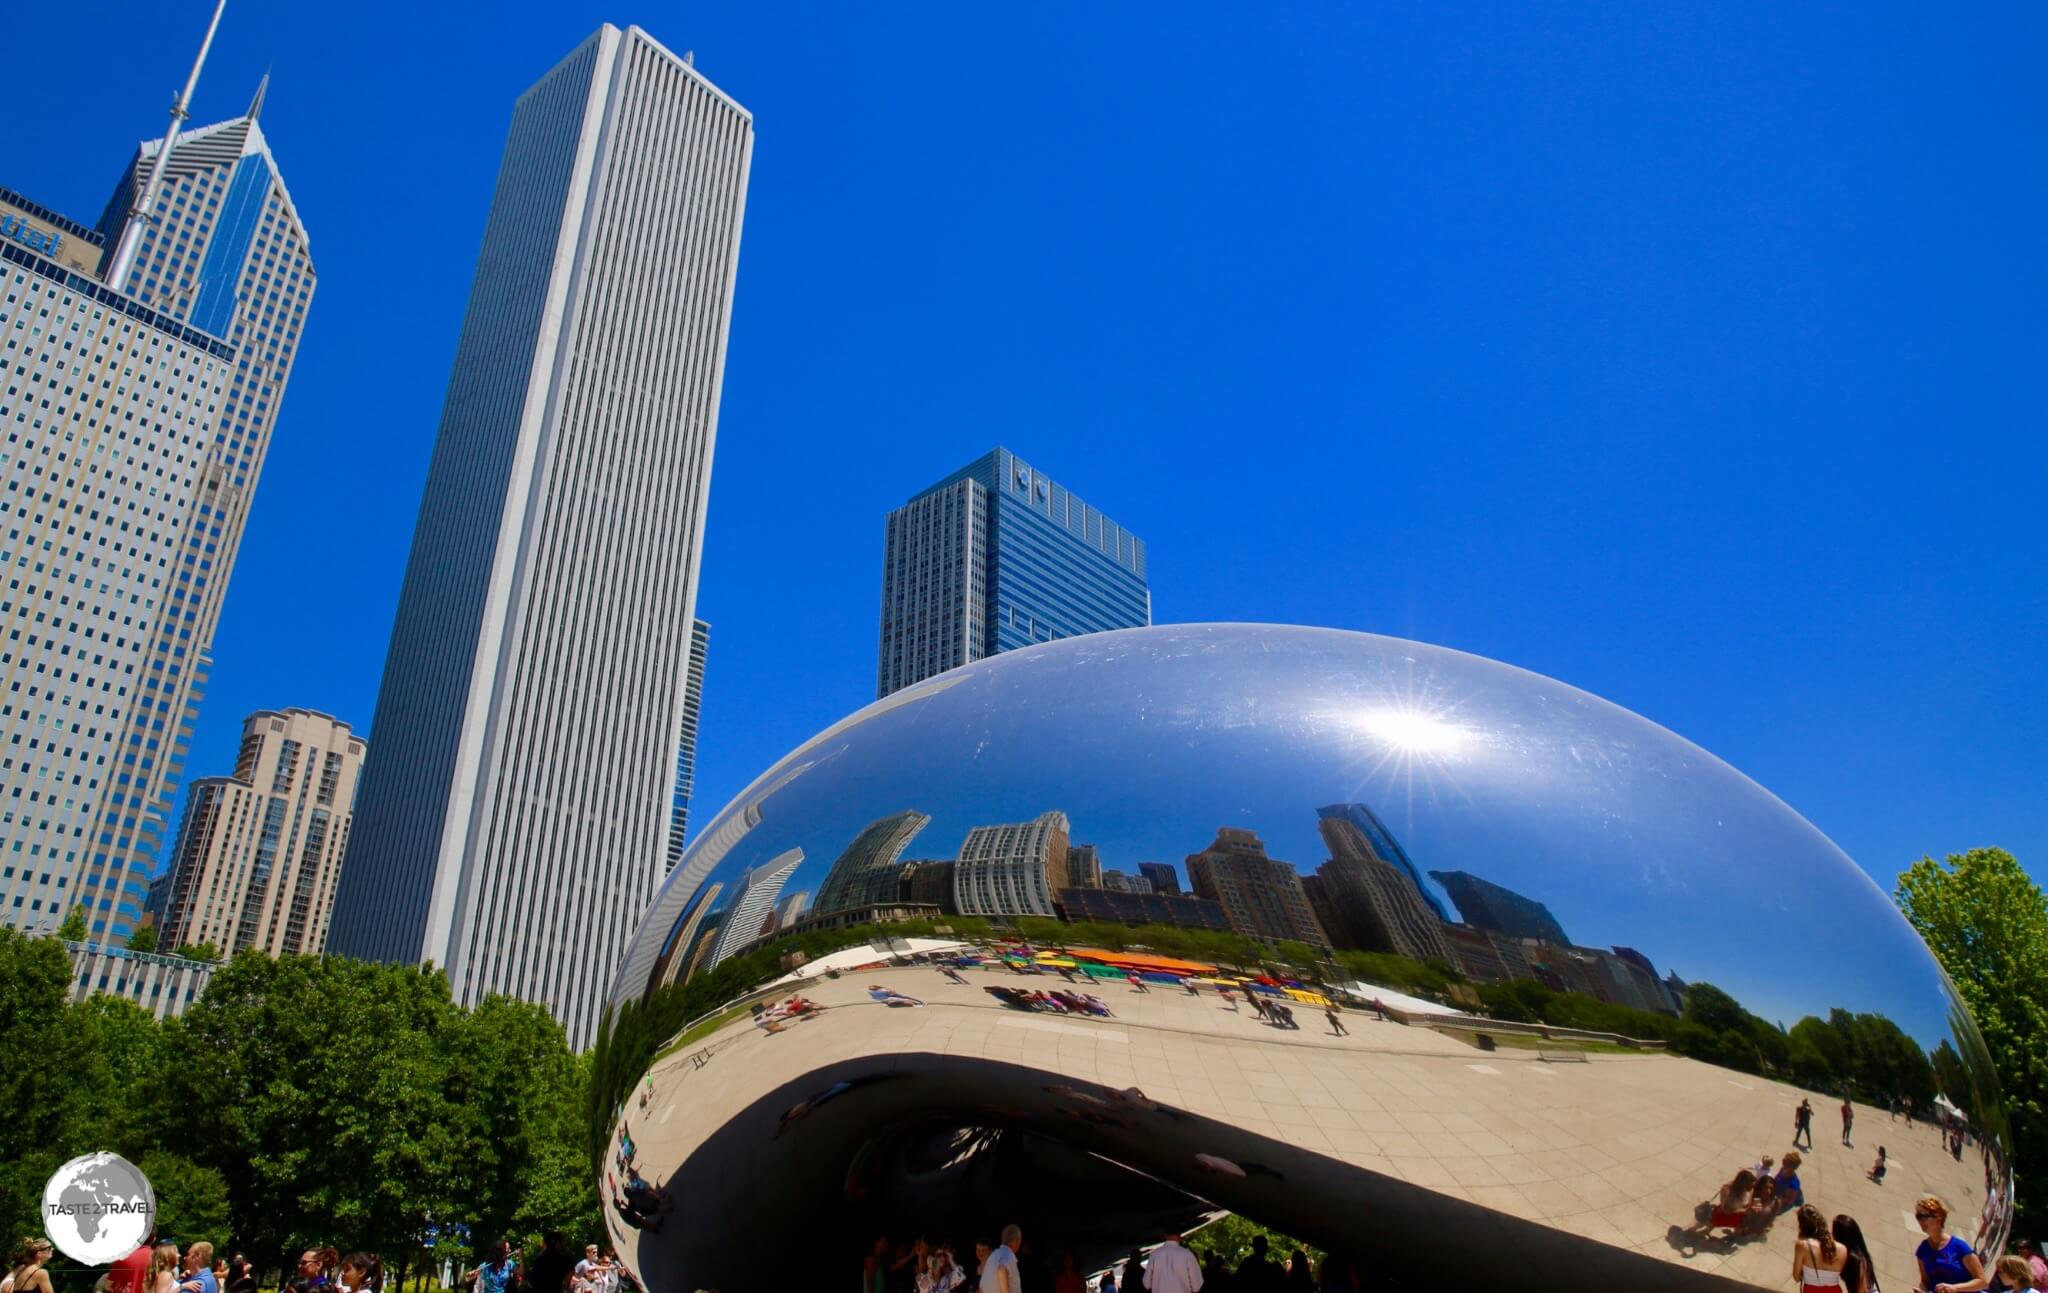 Anish Kapoor's 'The Bean'.